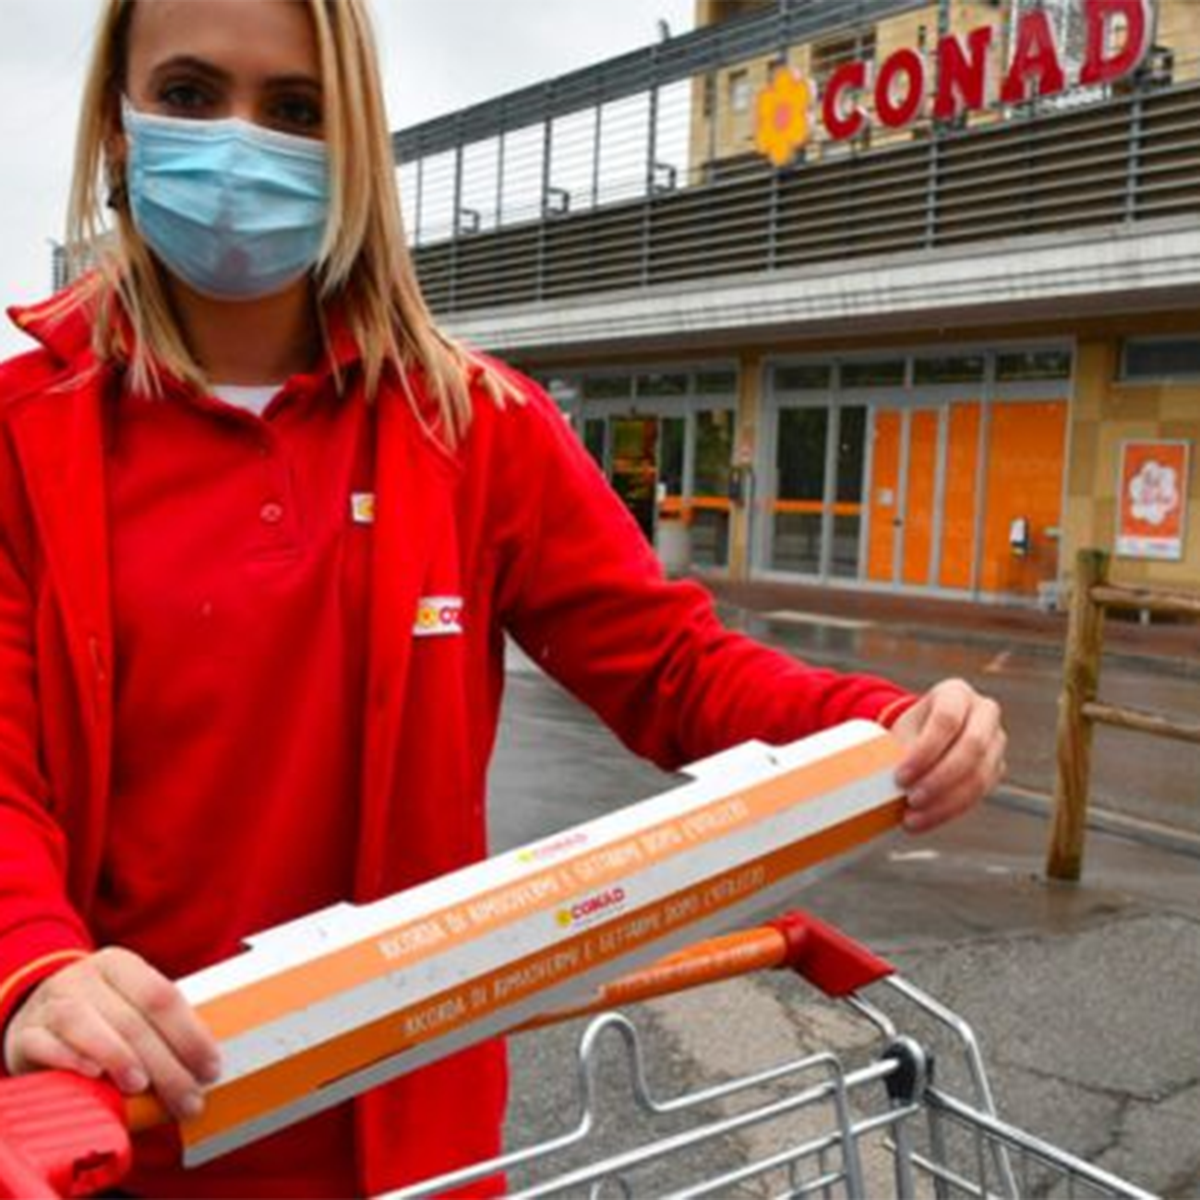 Conad tests <strong>recyclable handle&nbsp;covers </strong>for shopping carts